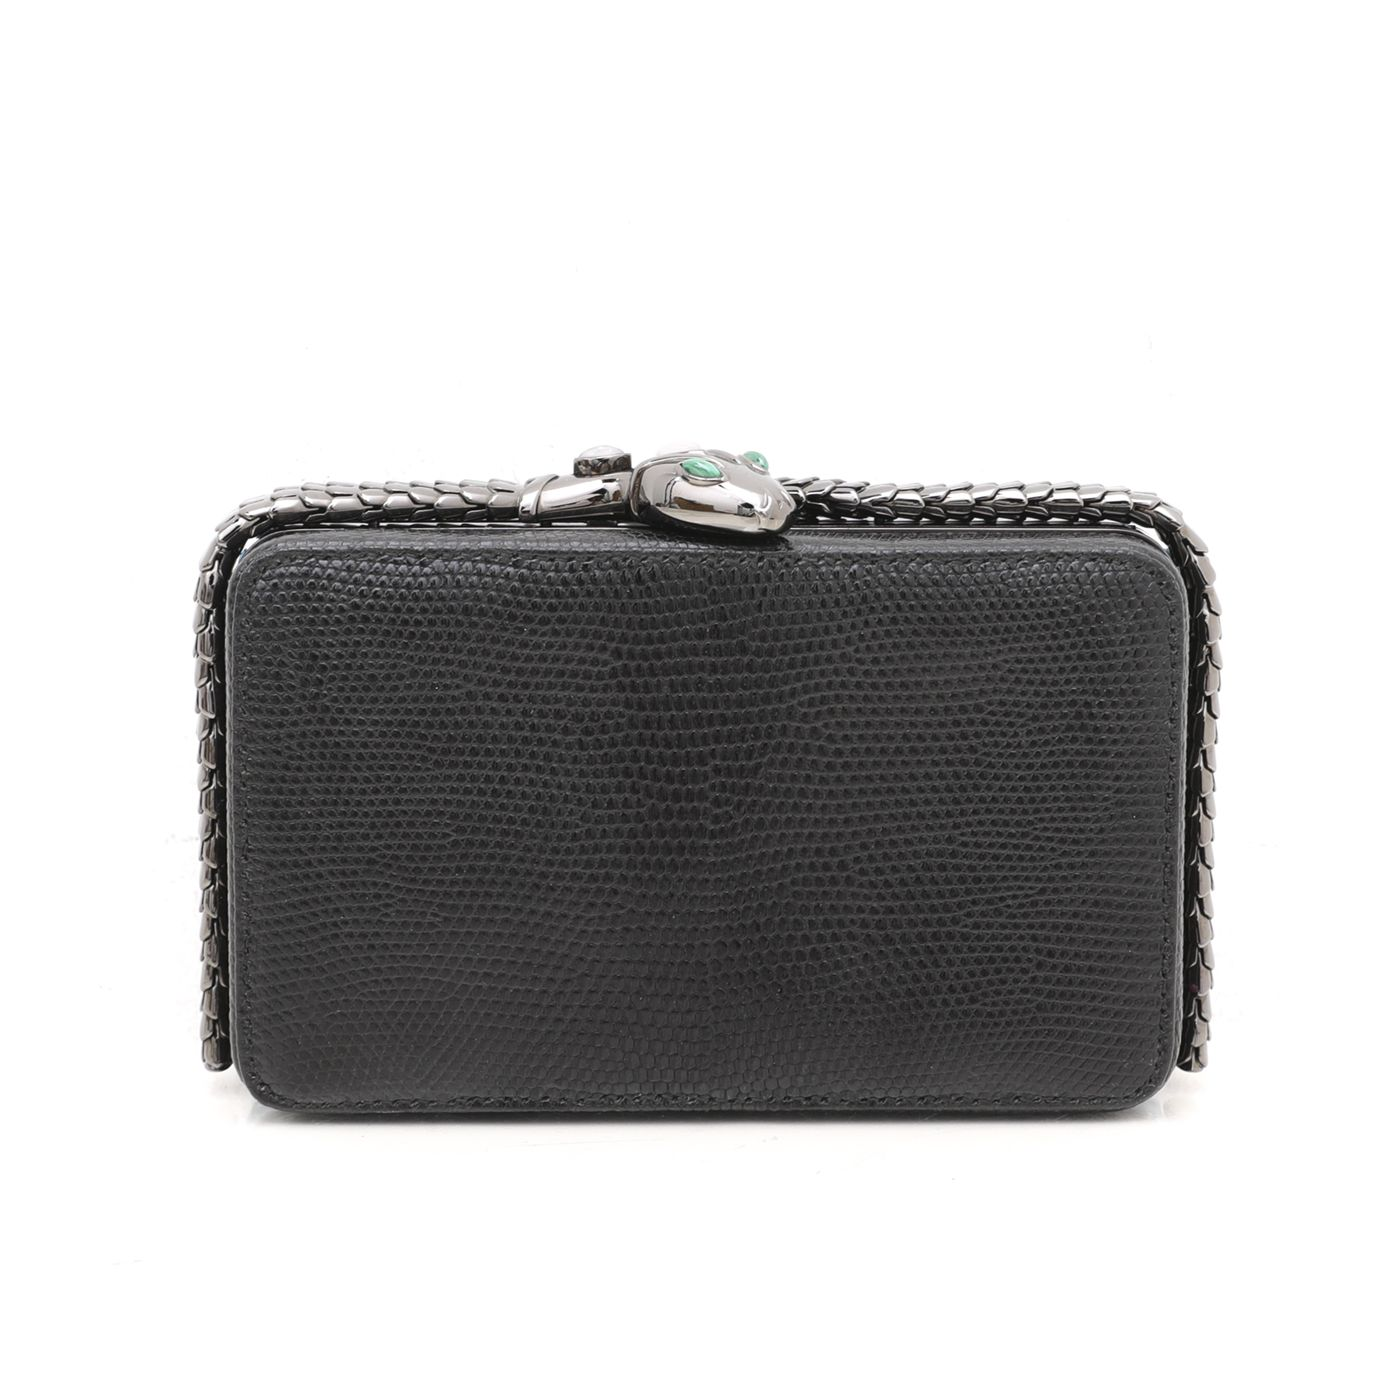 Bvlgari Black Lizard Jade Cocktail Serpenti Clutch